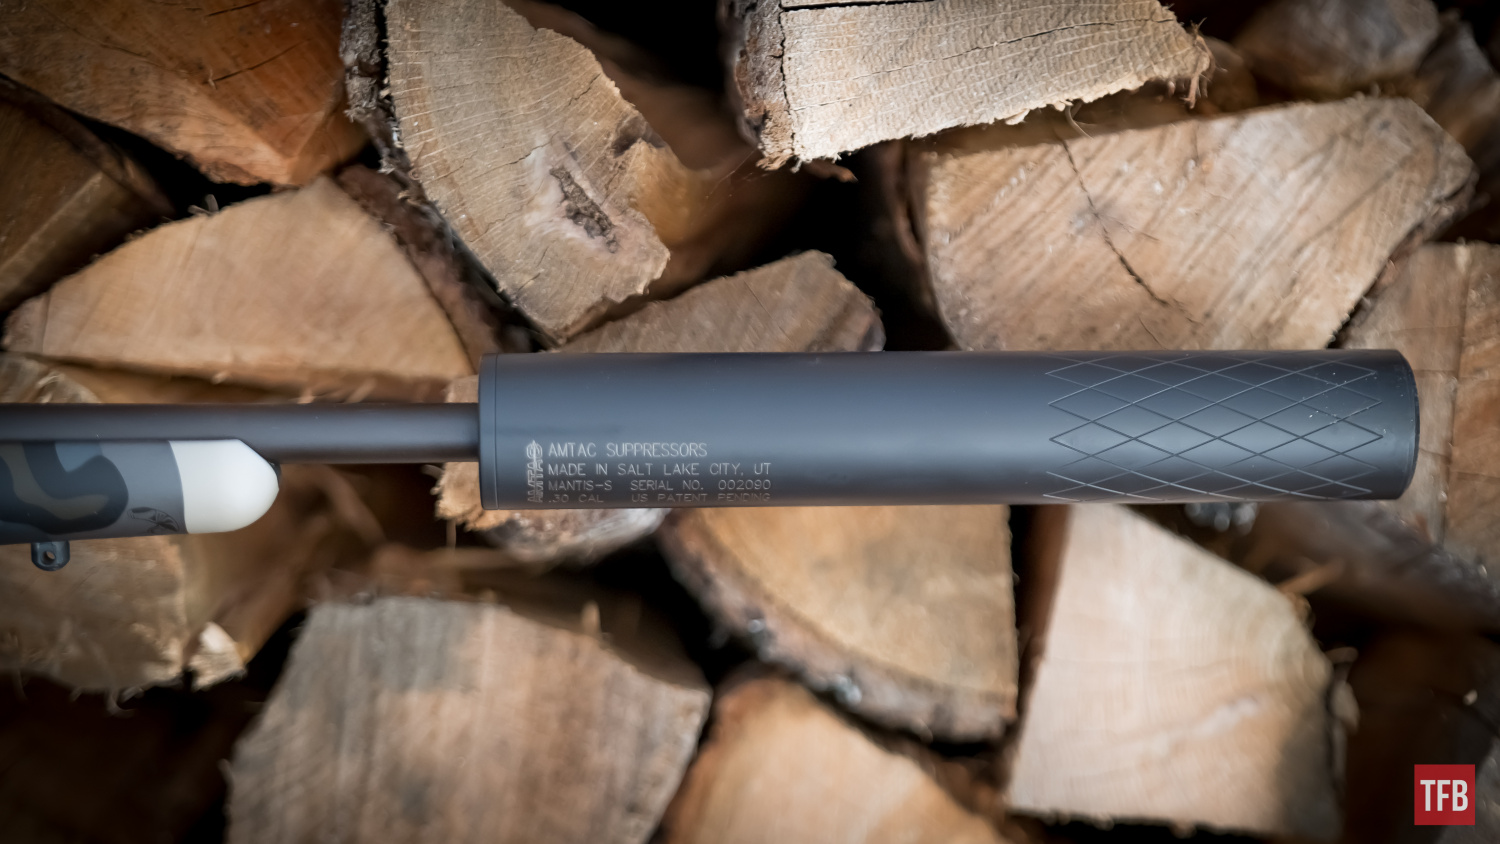 SILENCER SATURDAY #177: Over A Barrel With The AMTAC MANTIS